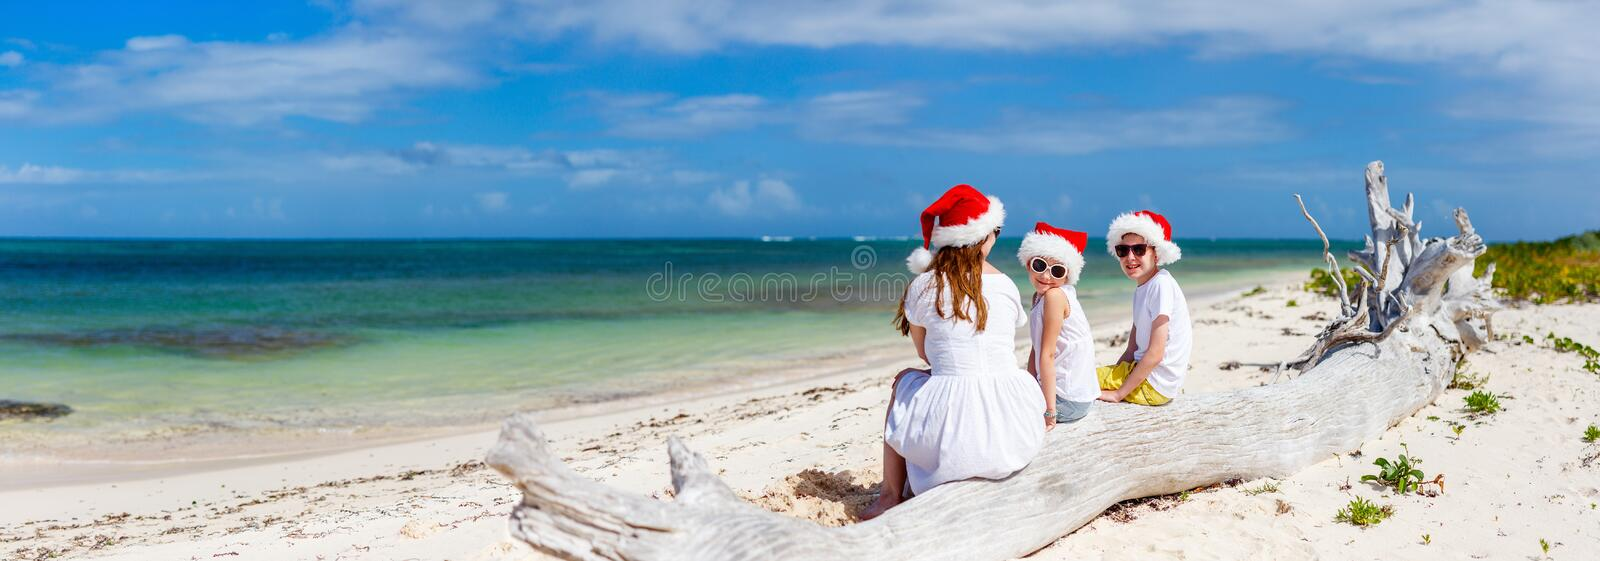 Family at beach on Christmas royalty free stock images